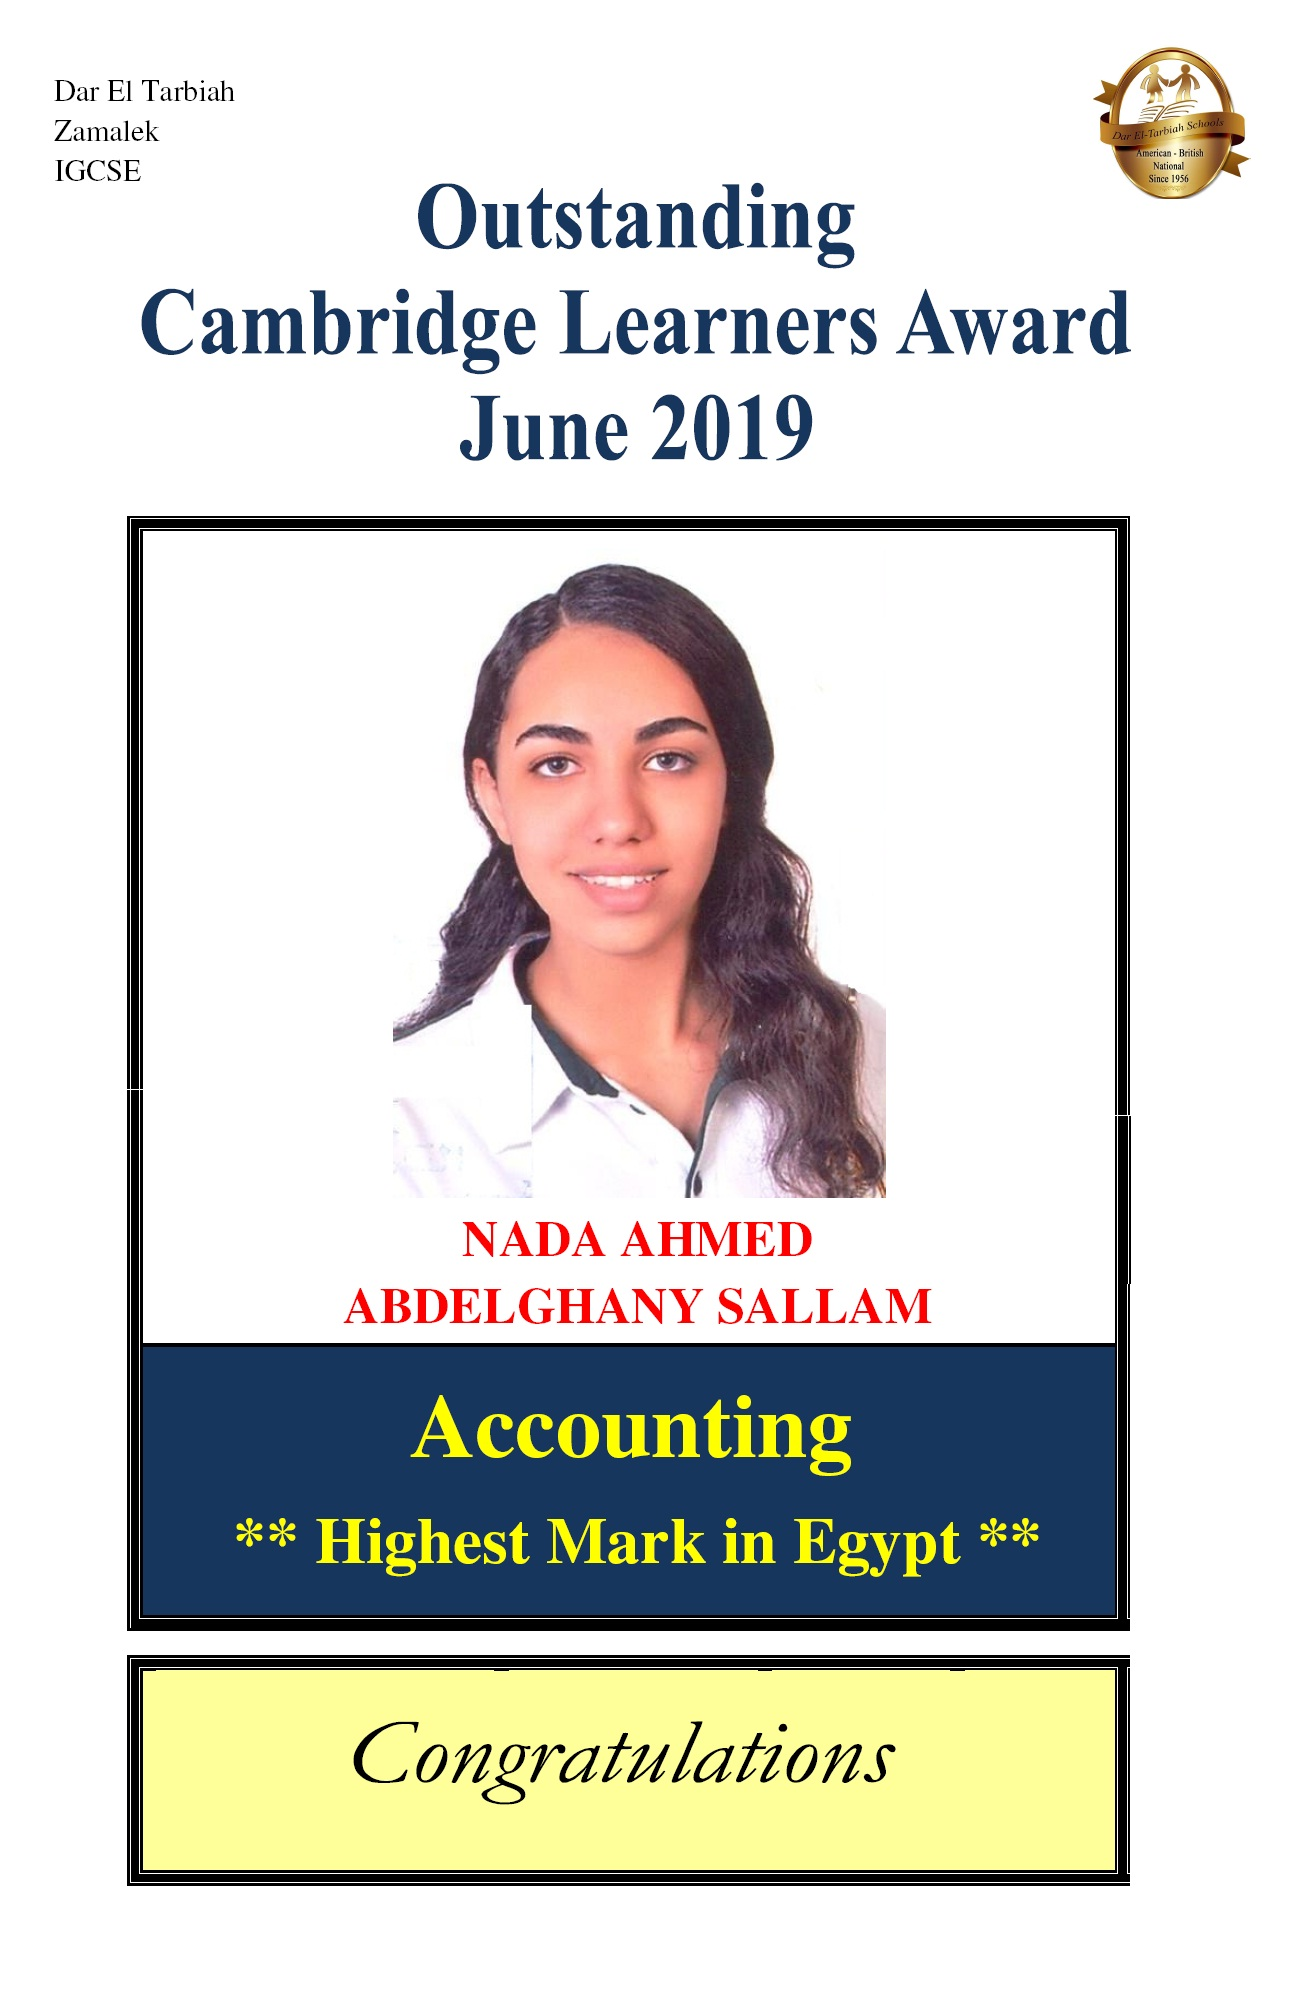 IG Zamalek - Cambridge High Achievers 2019